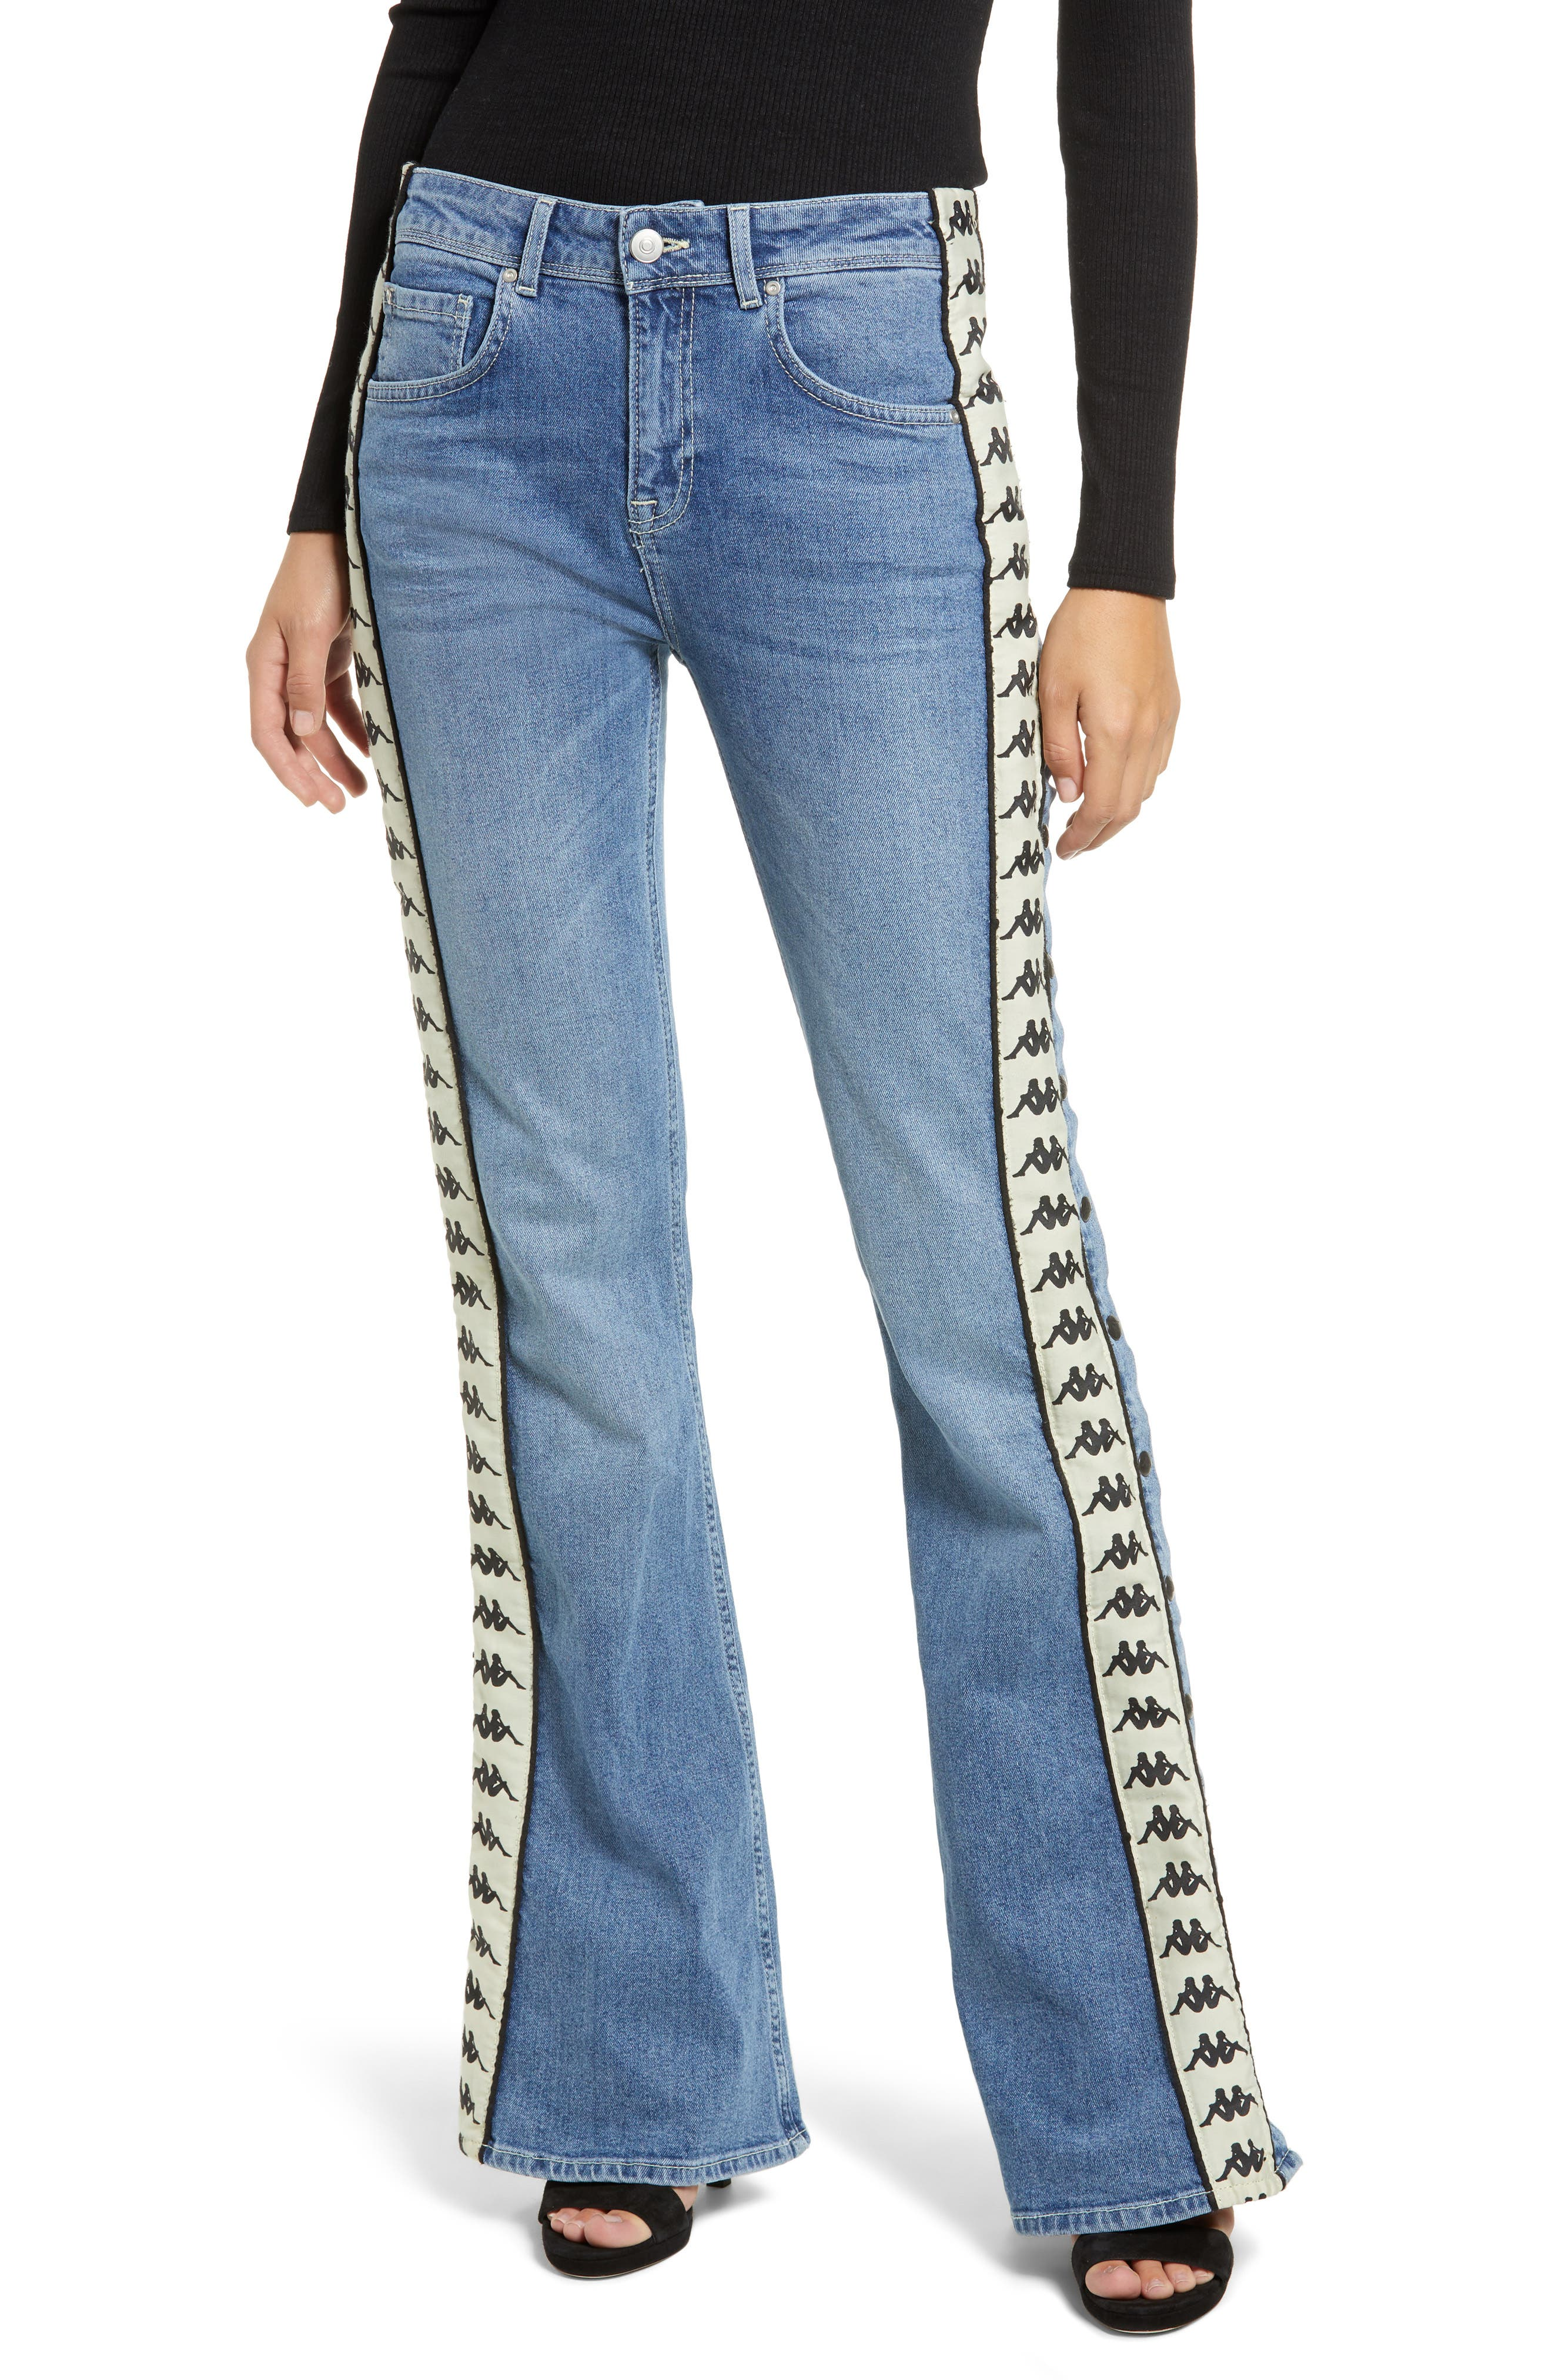 Authentic Brigit Flare Leg Jeans,                             Main thumbnail 1, color,                             LIGHT COBALT/ BEIGE